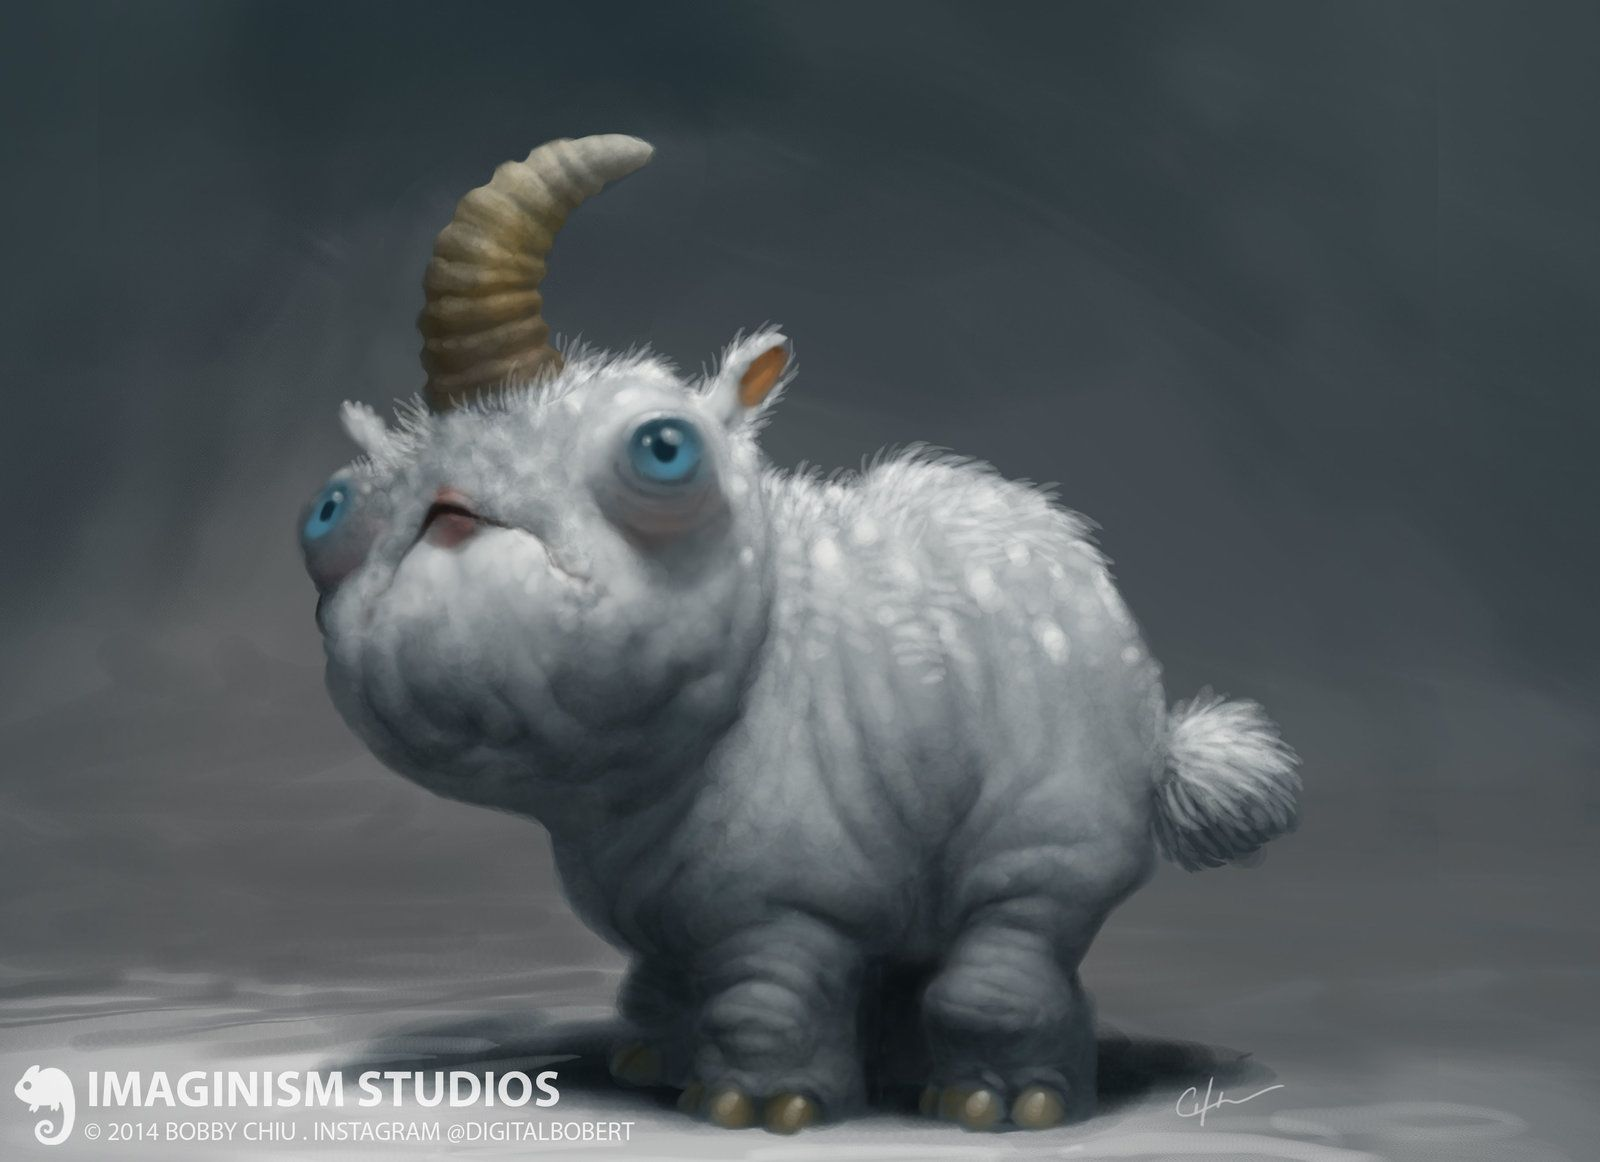 A Different Kind of Unicorn, Bobby Chiu on ArtStation at https://www.artstation.com/artwork/a-different-kind-of-unicorn